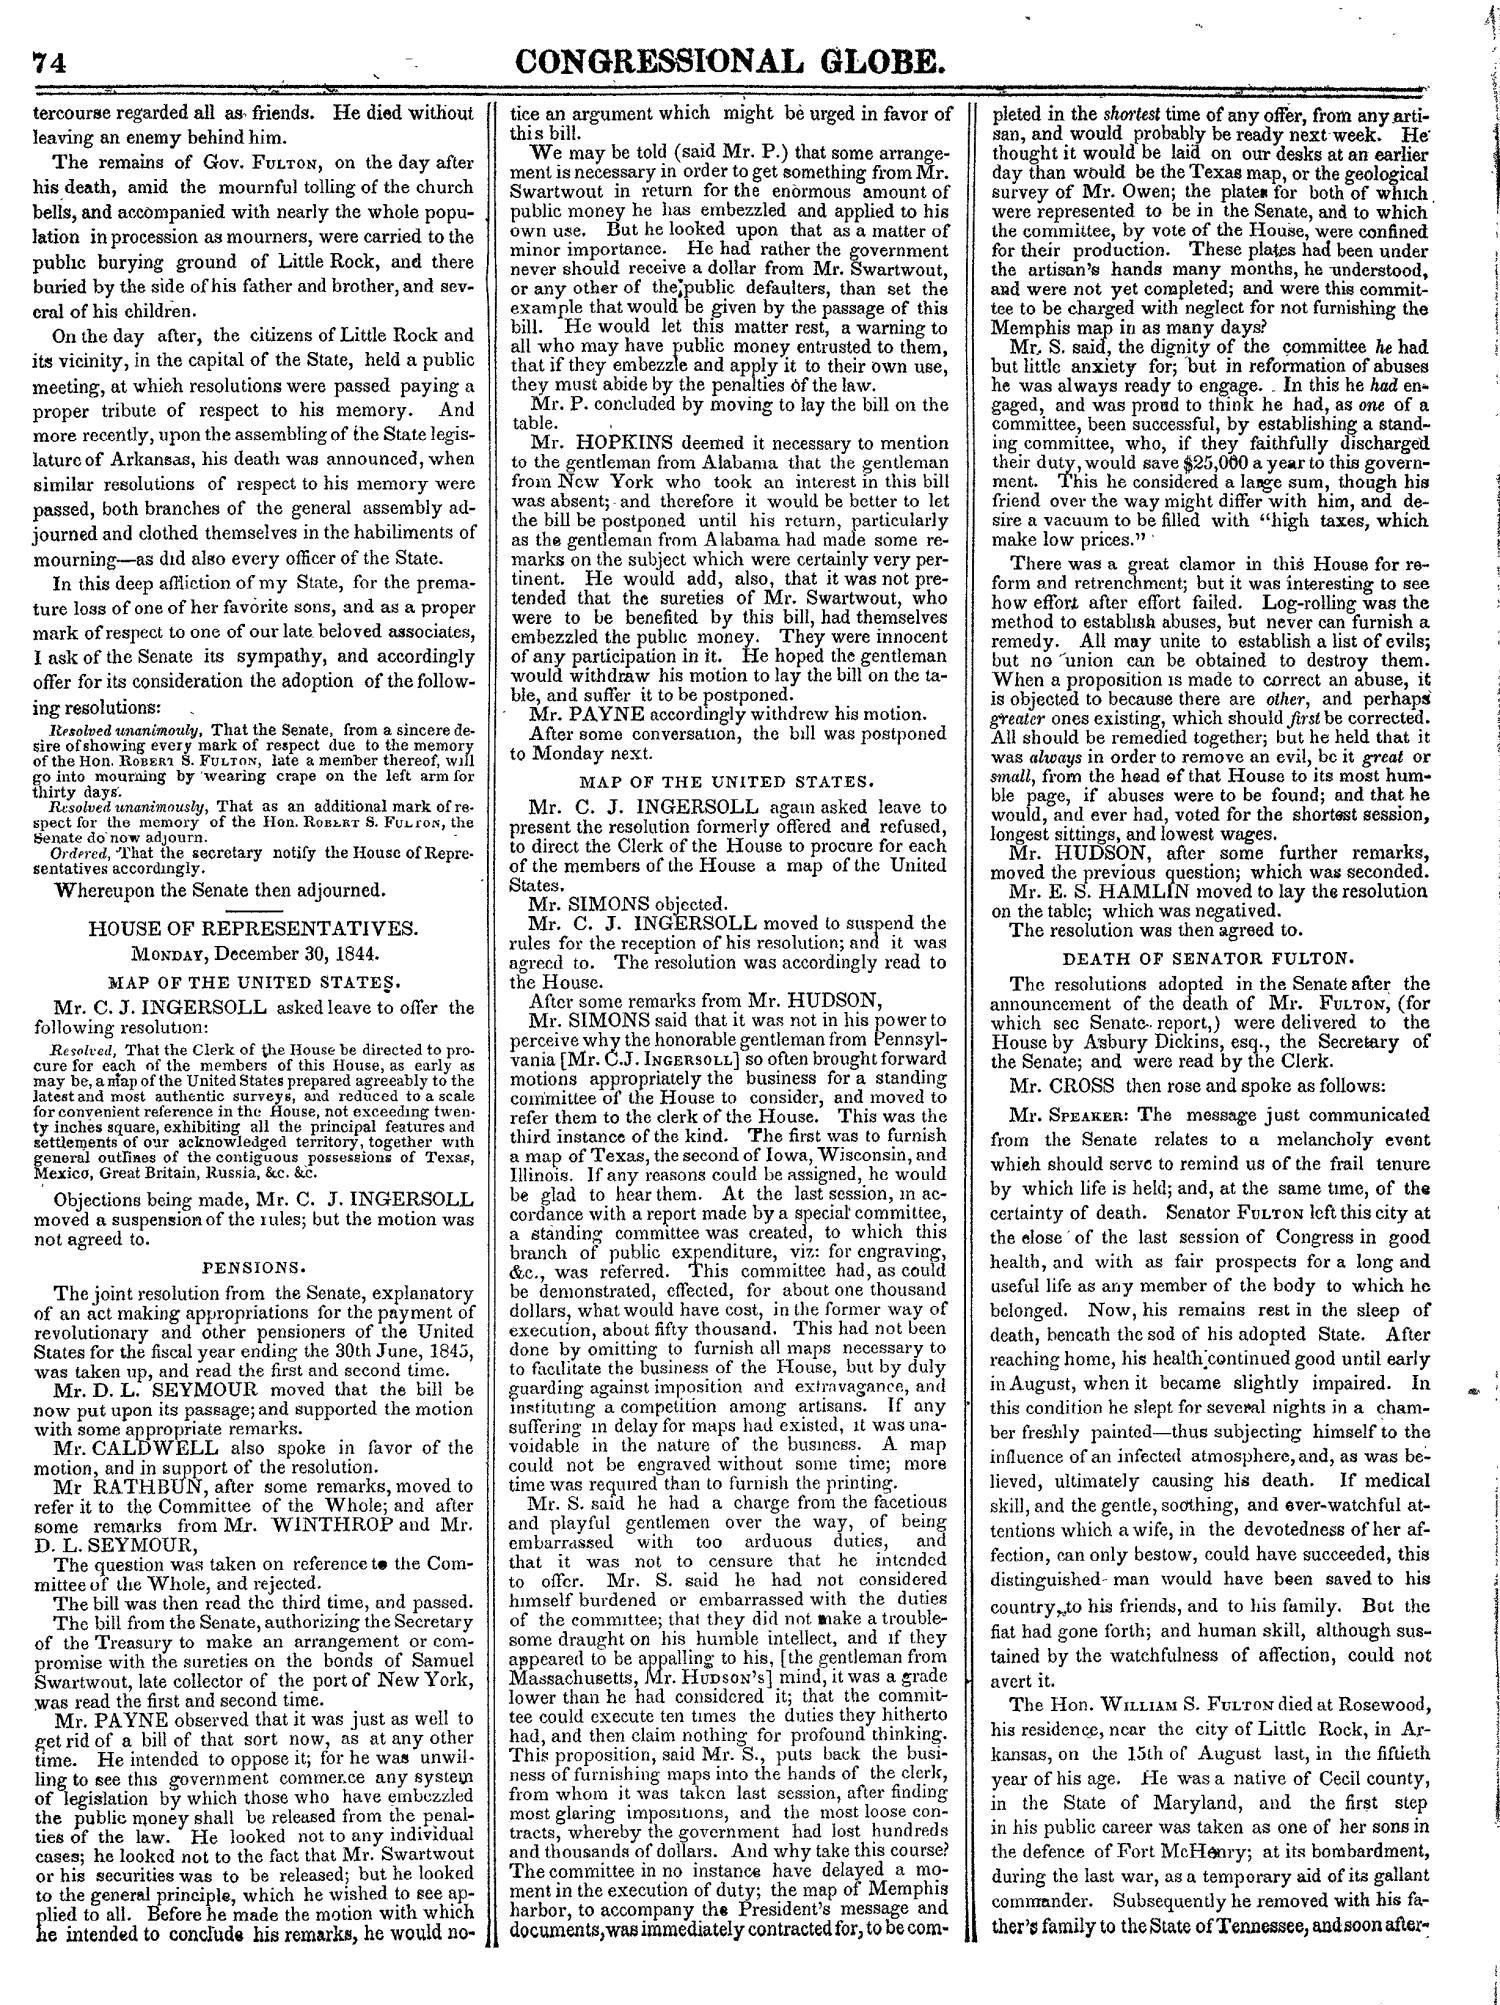 The Congressional Globe, Volume 14: Twenty-Eighth Congress, Second Session                                                                                                      74